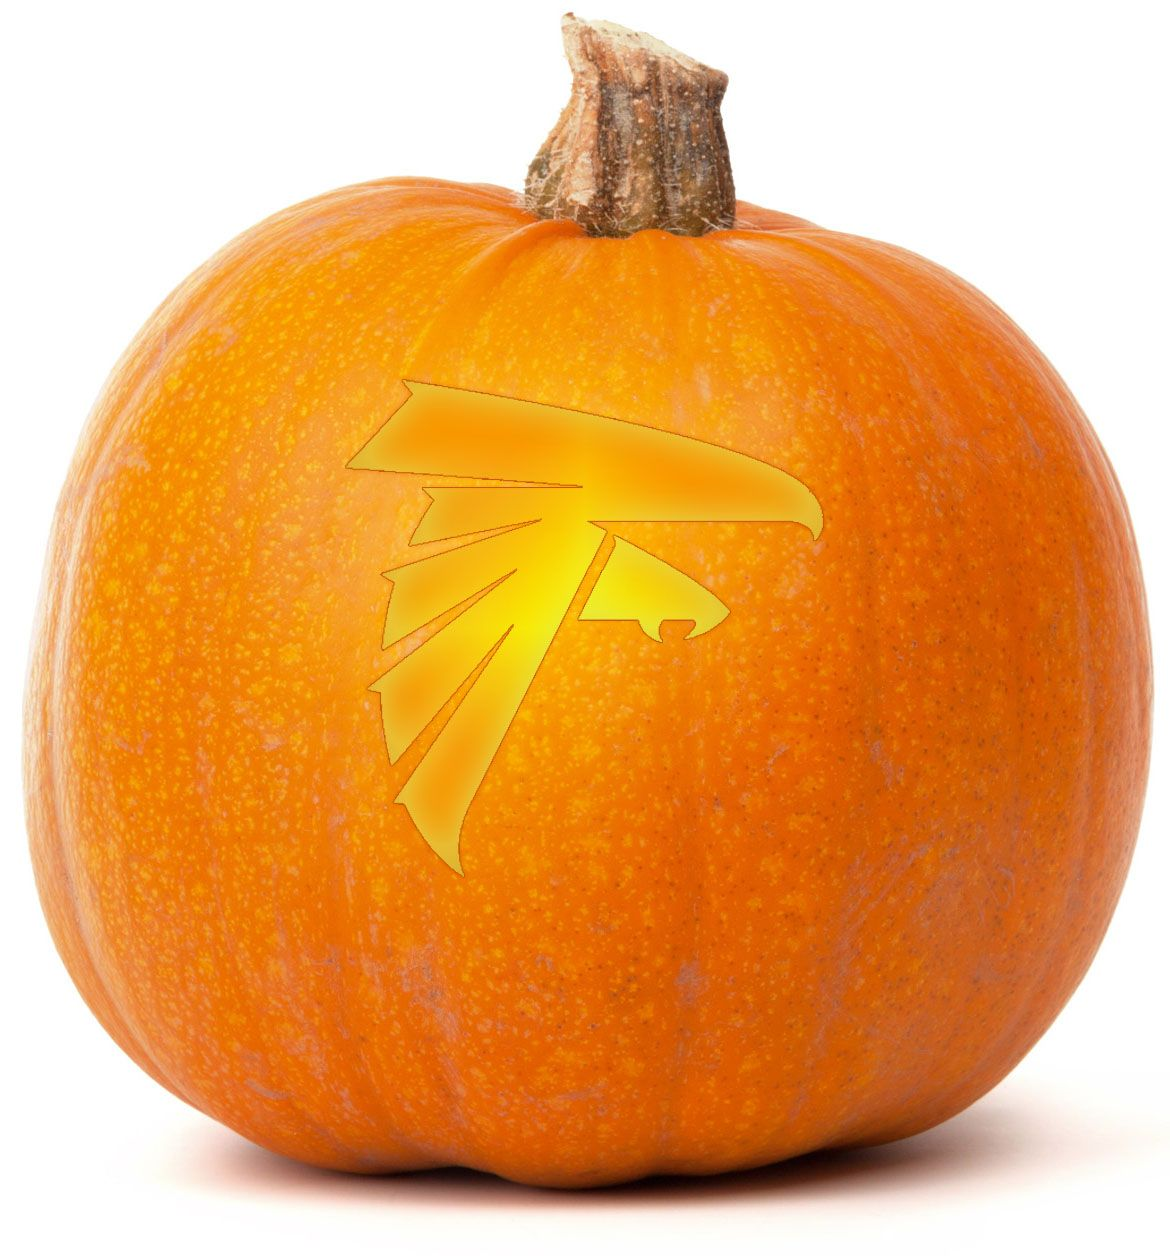 Download Our Free Atlanta Falcons Pumpkin Carving Template Browse